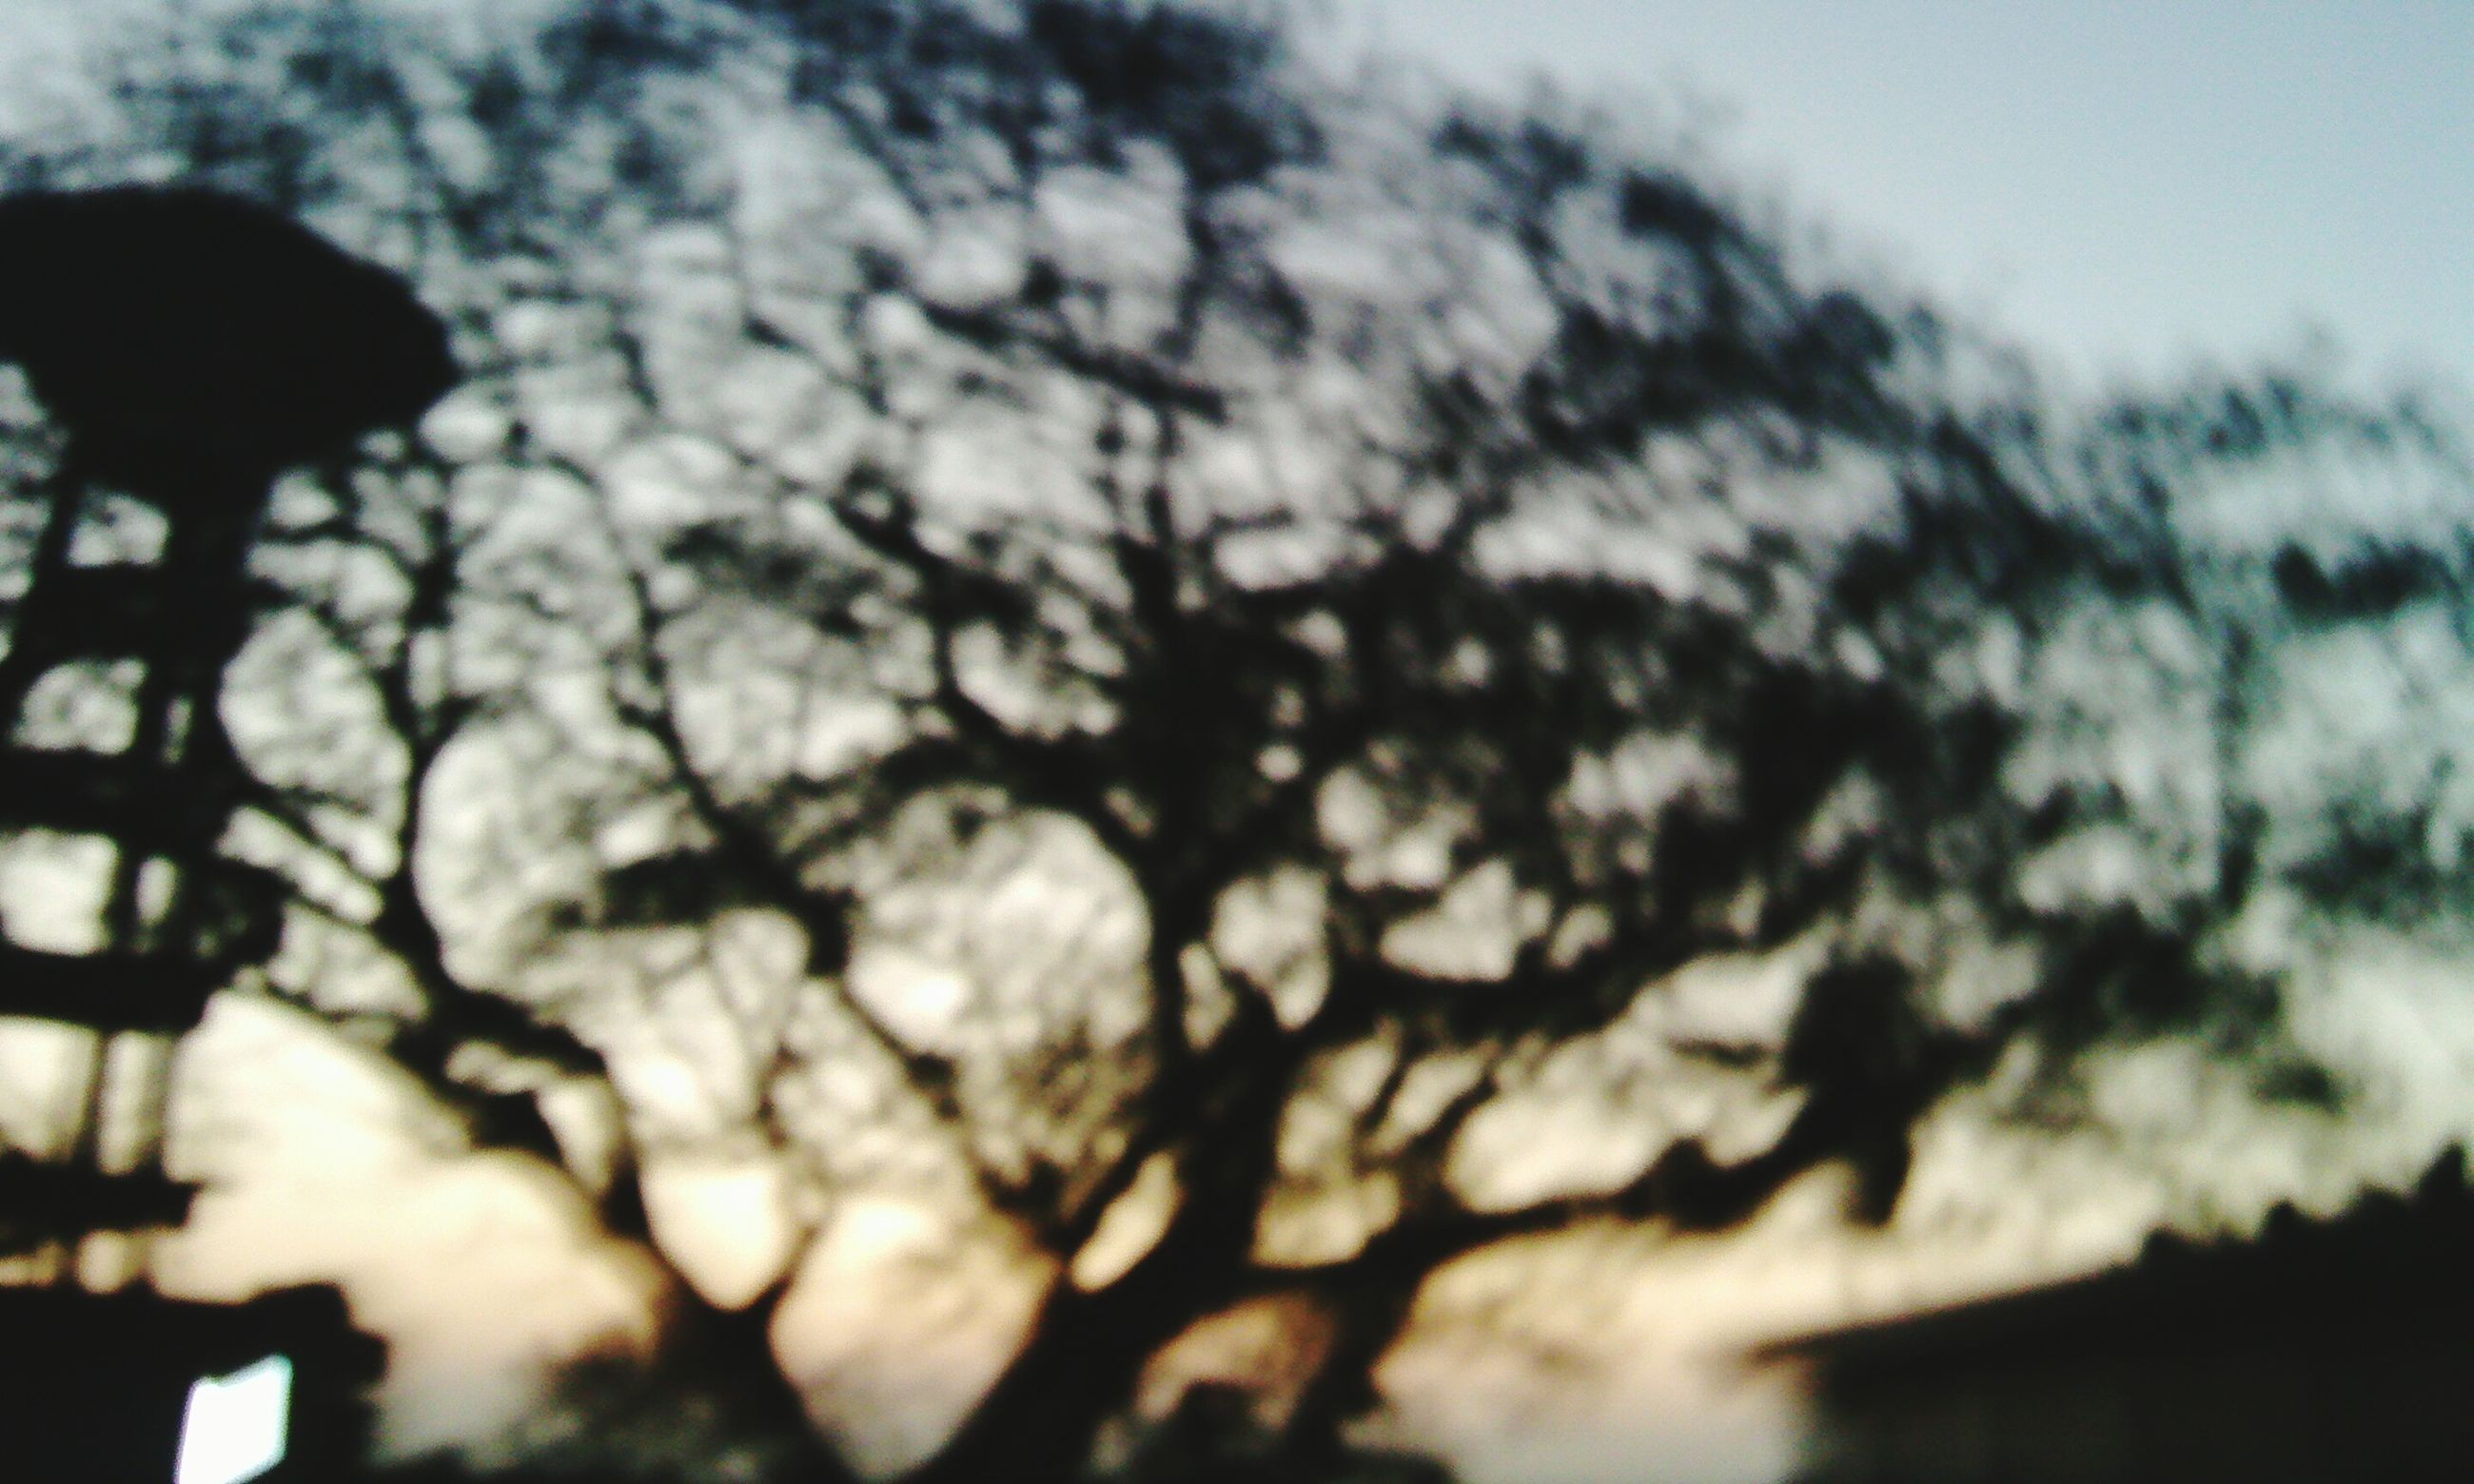 tree, silhouette, low angle view, sky, branch, focus on foreground, selective focus, nature, growth, close-up, outdoors, beauty in nature, dusk, tranquility, no people, day, sunlight, bare tree, sunset, scenics